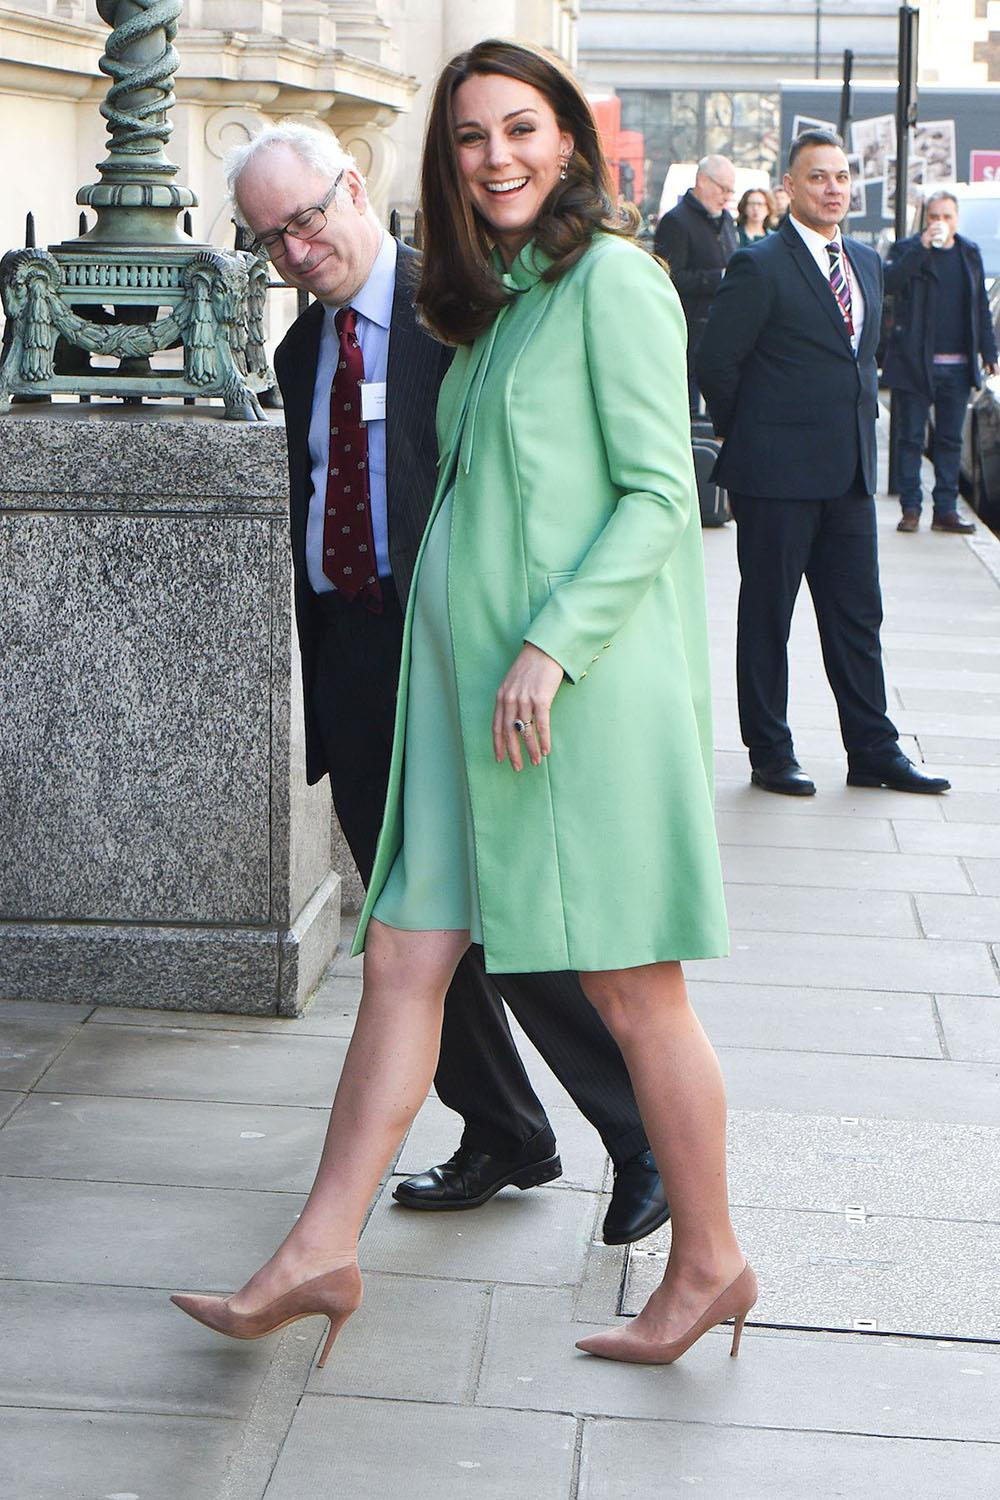 kate middleton green outfit 2. Al estilo de Kate Middleton